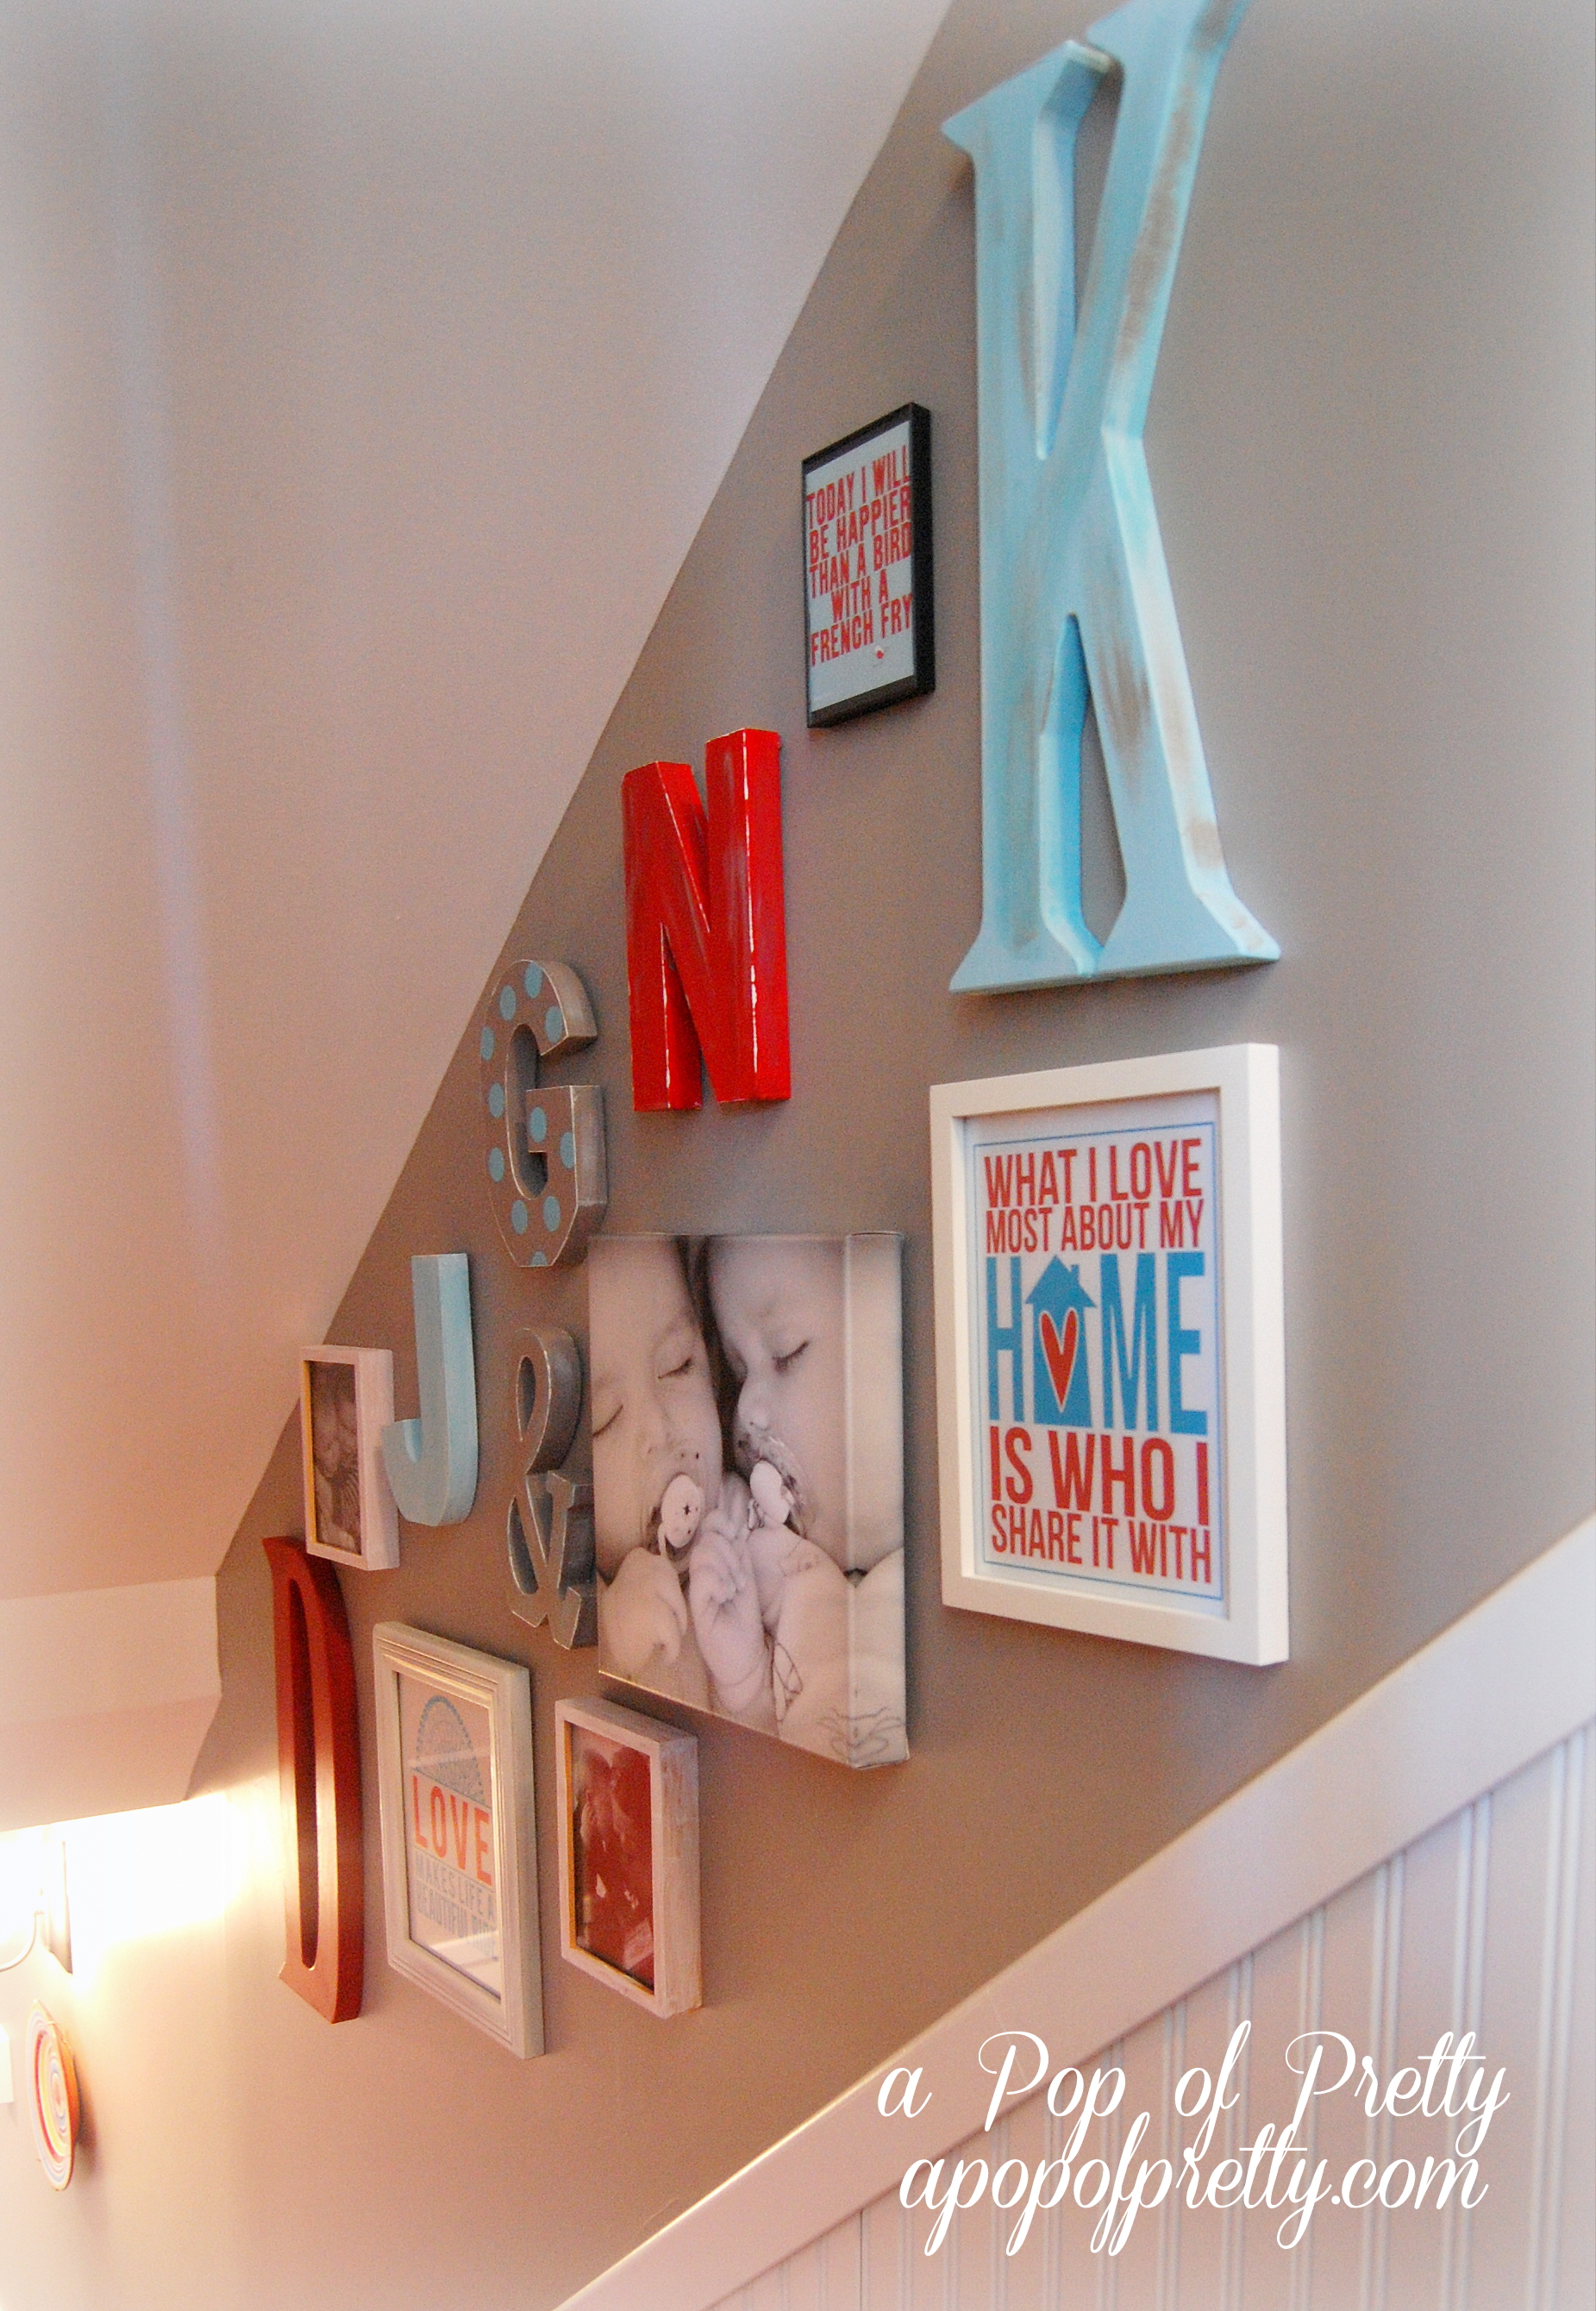 Decorating With Letters A Pop Of Pretty Blog Canadian Home Decorating Blog St John 39 S Canada